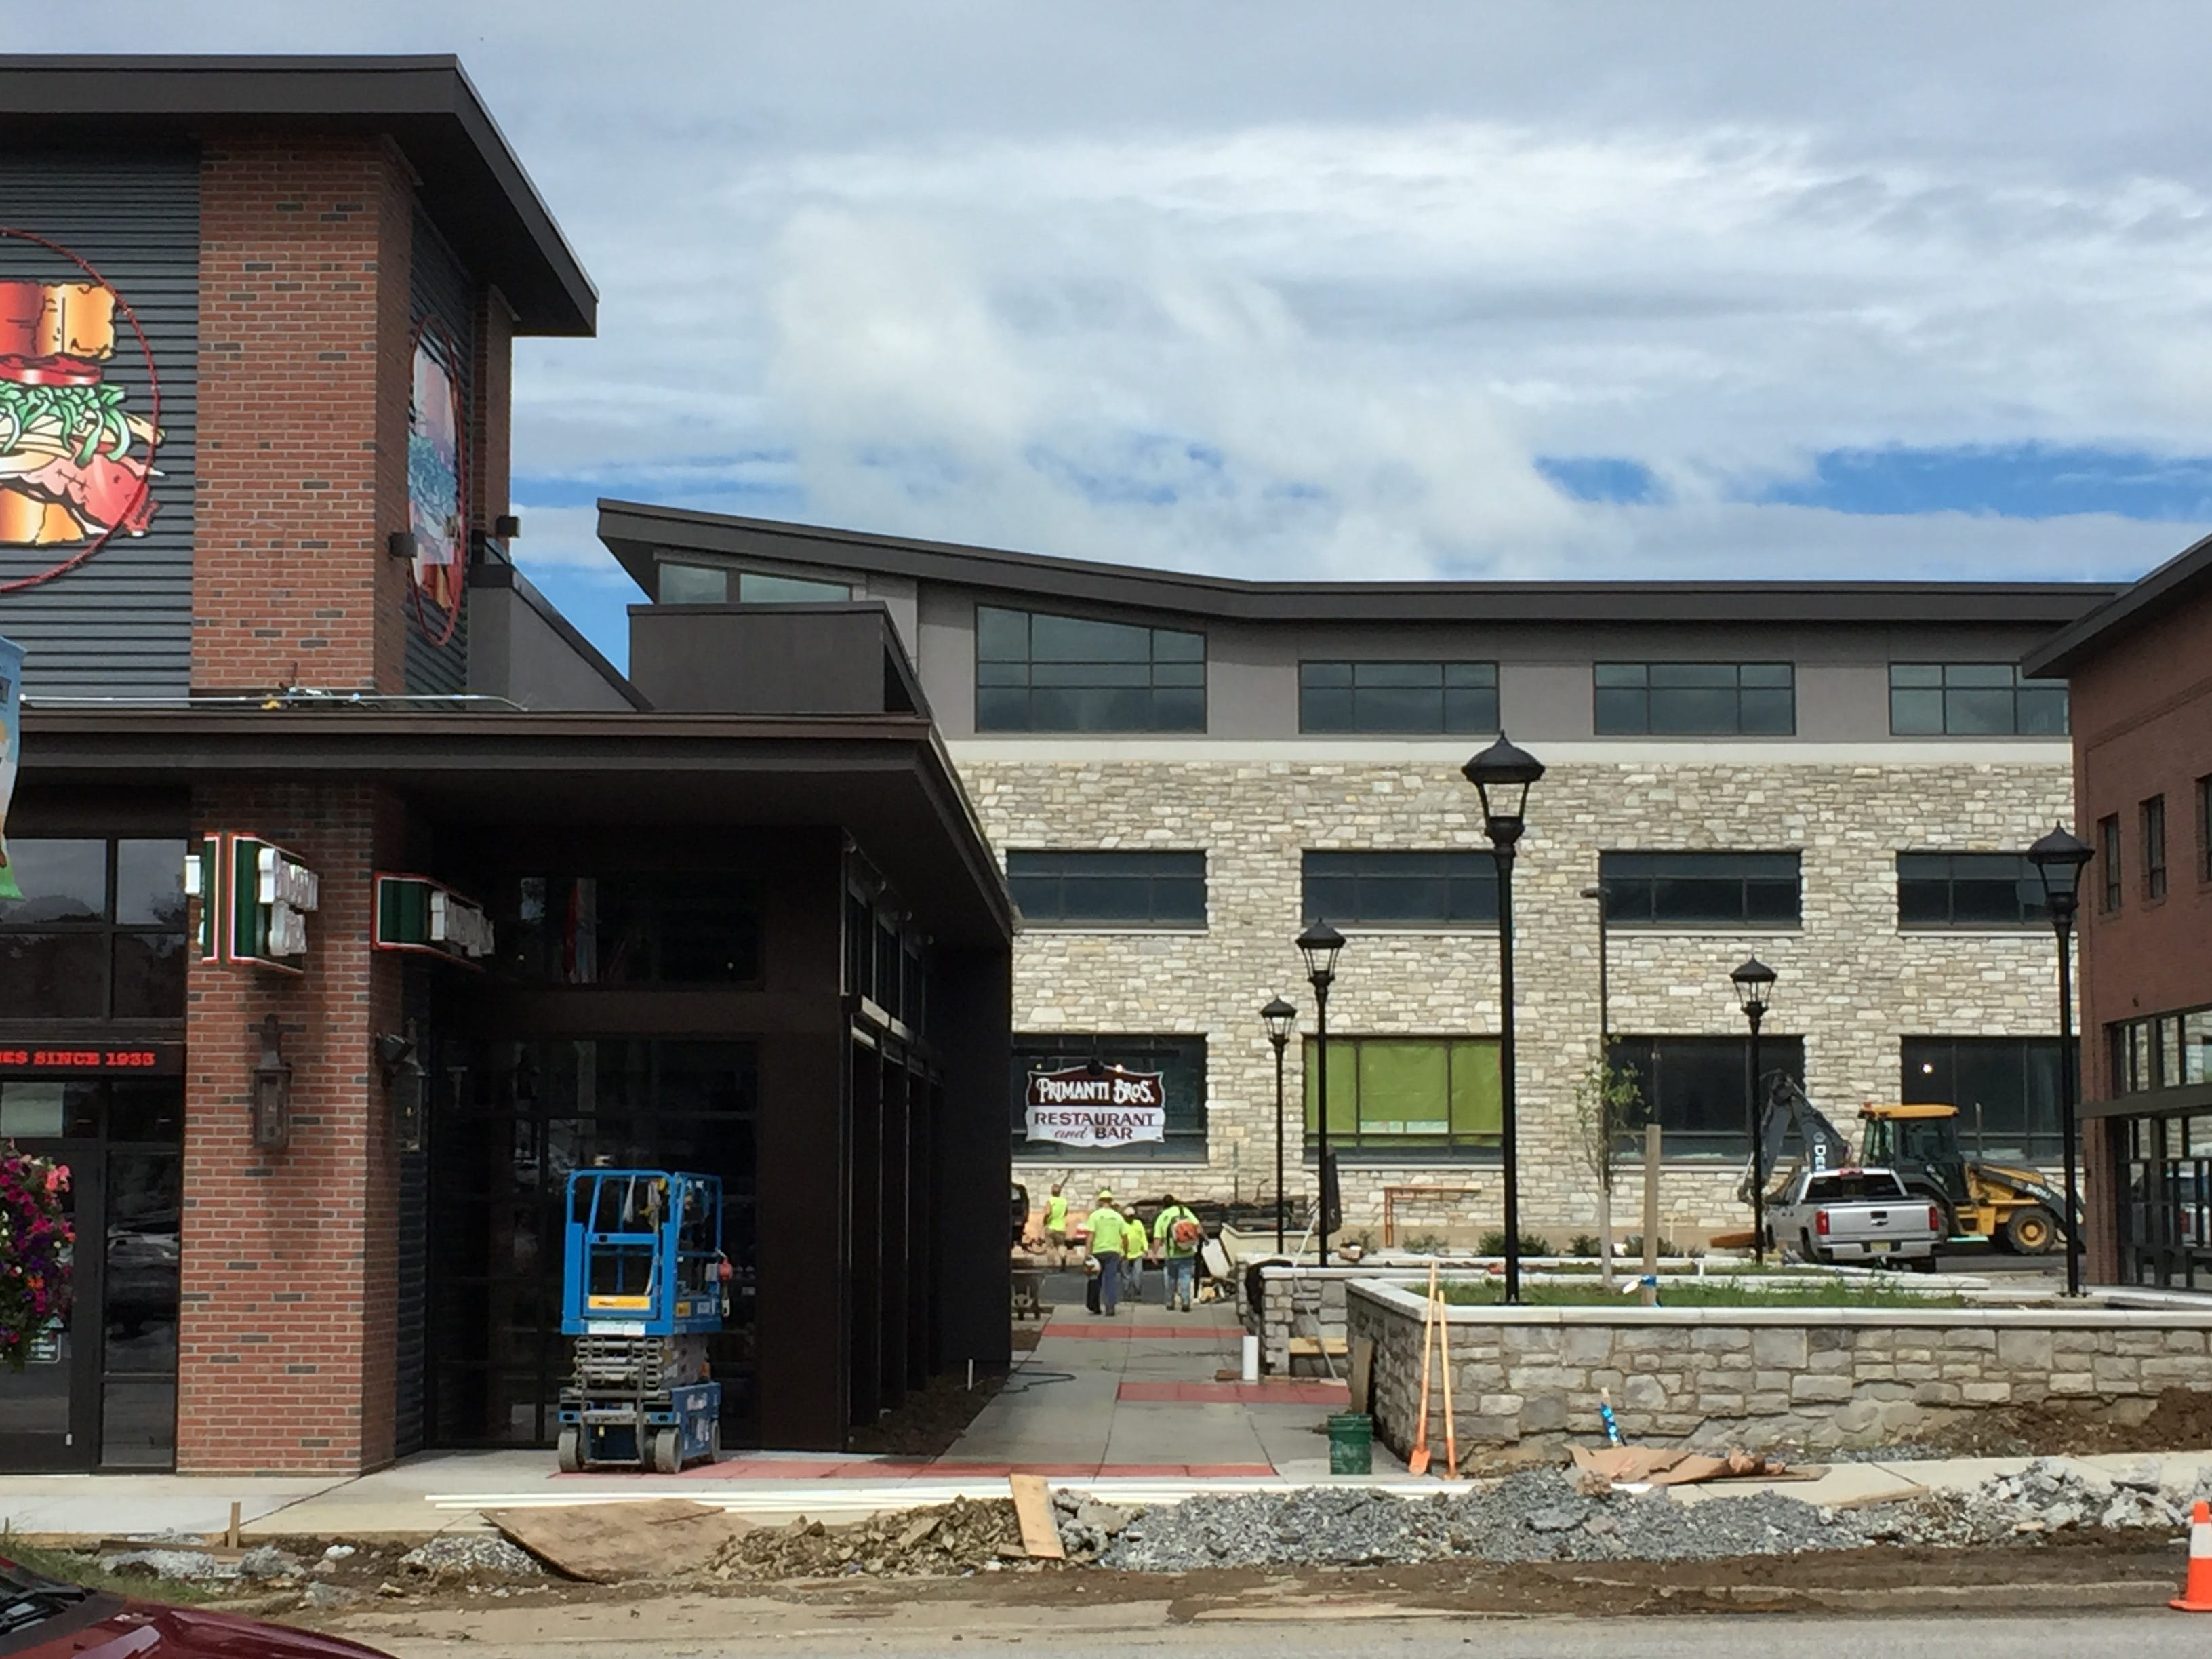 A three-story office building is visible between Primanti Bros. and Iron Hill Brewery at Hershey Towne Square.